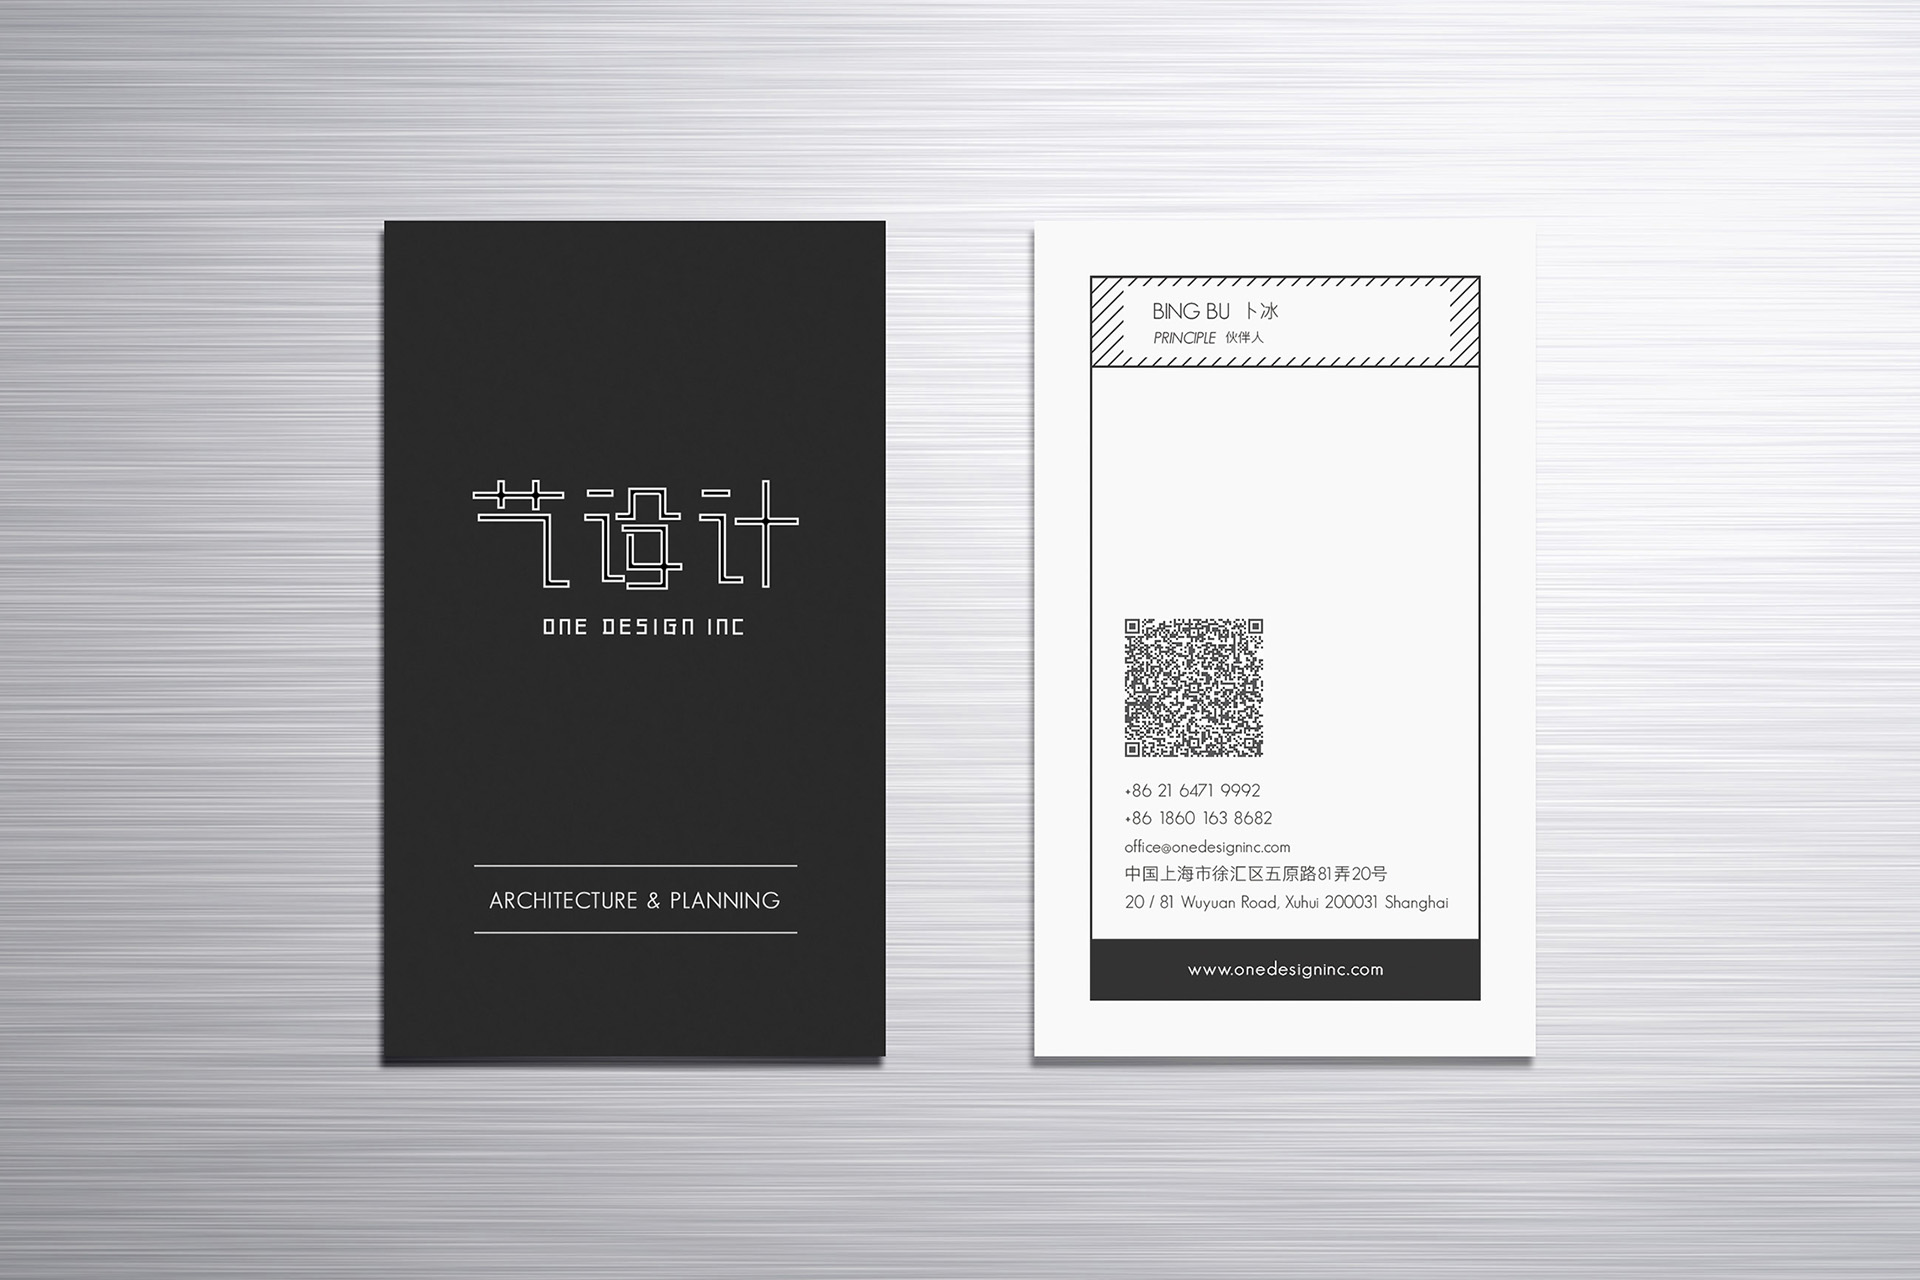 One Design Inc Business Card